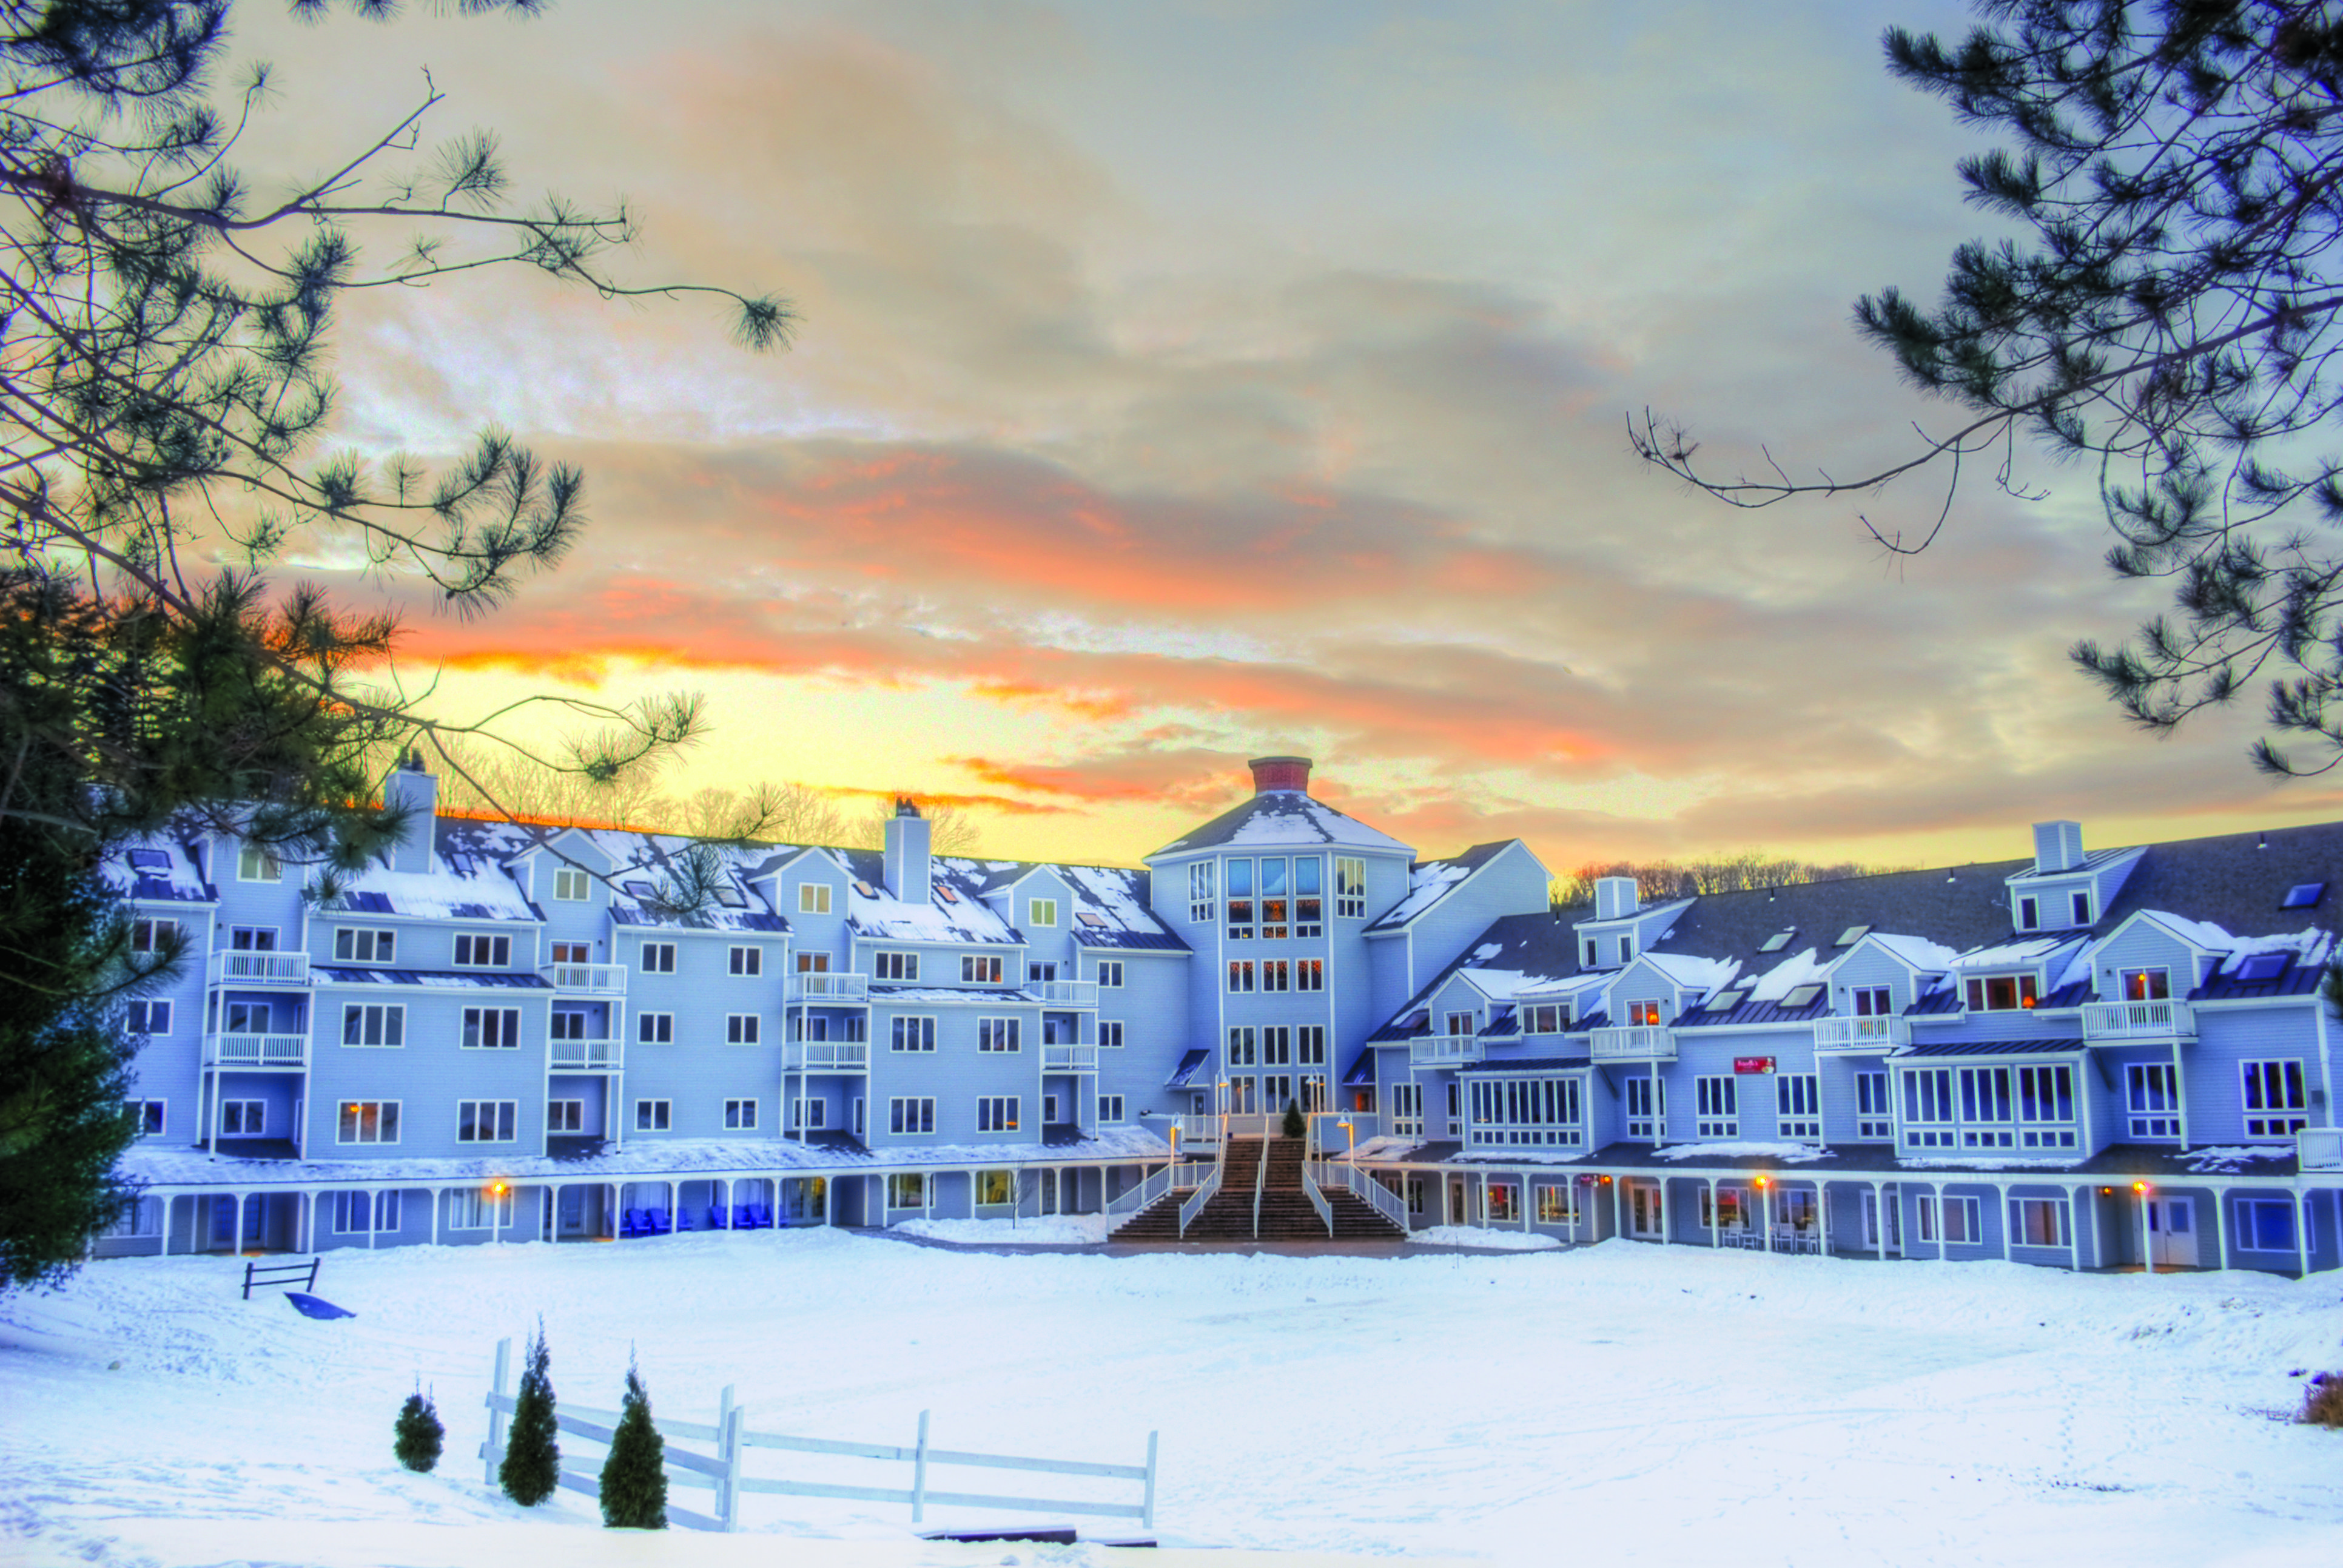 Holiday Inn Club Vacations Ascutney Mountain Resort in